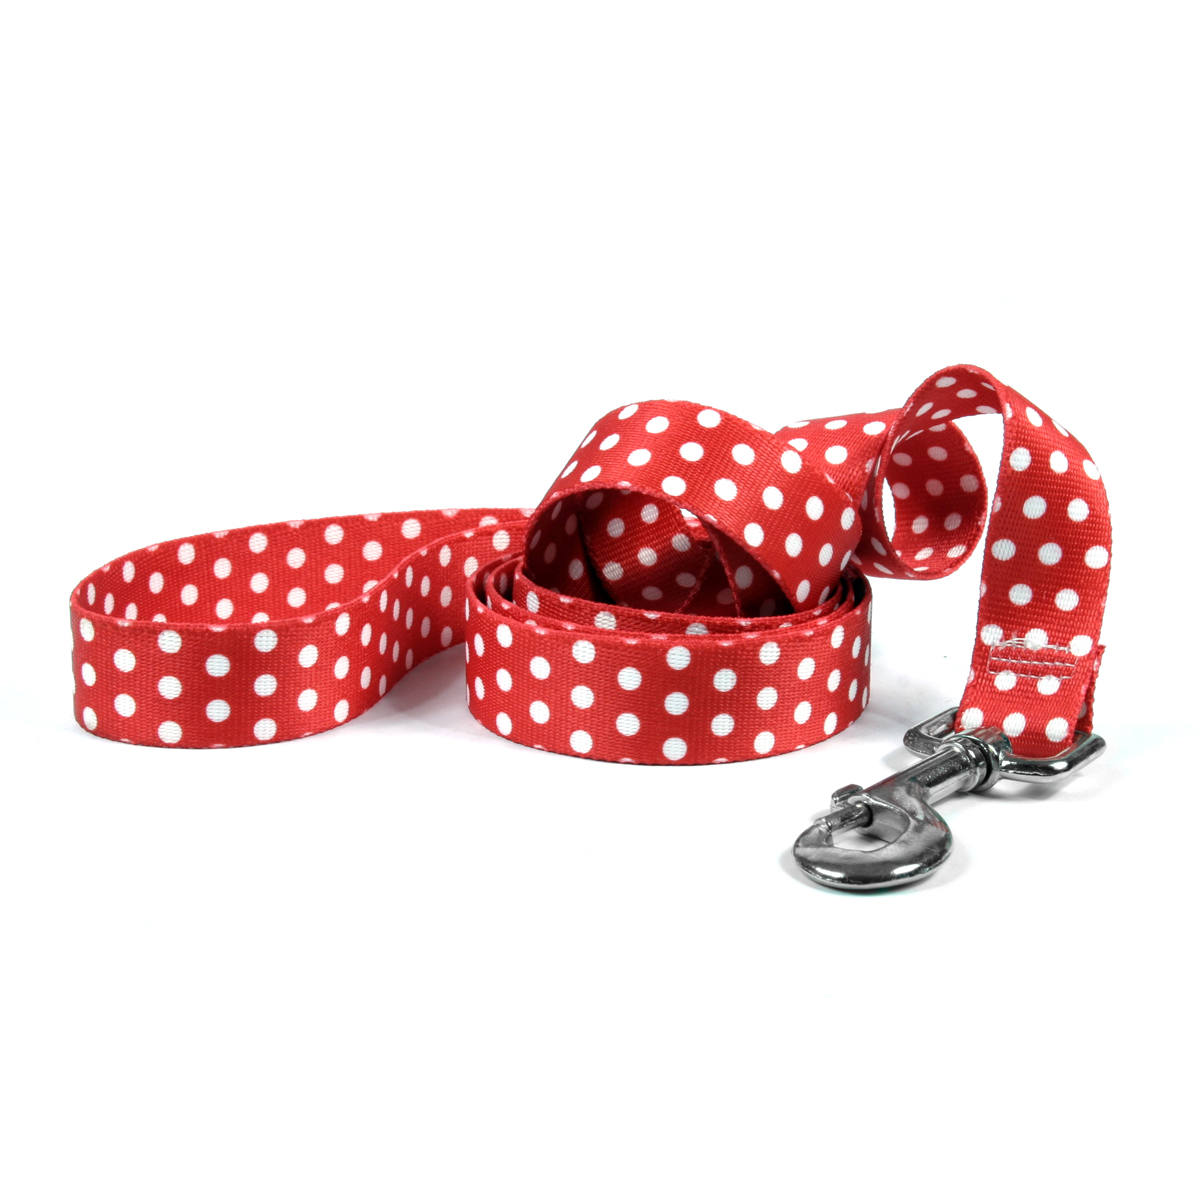 New Red Polka Dot Lead